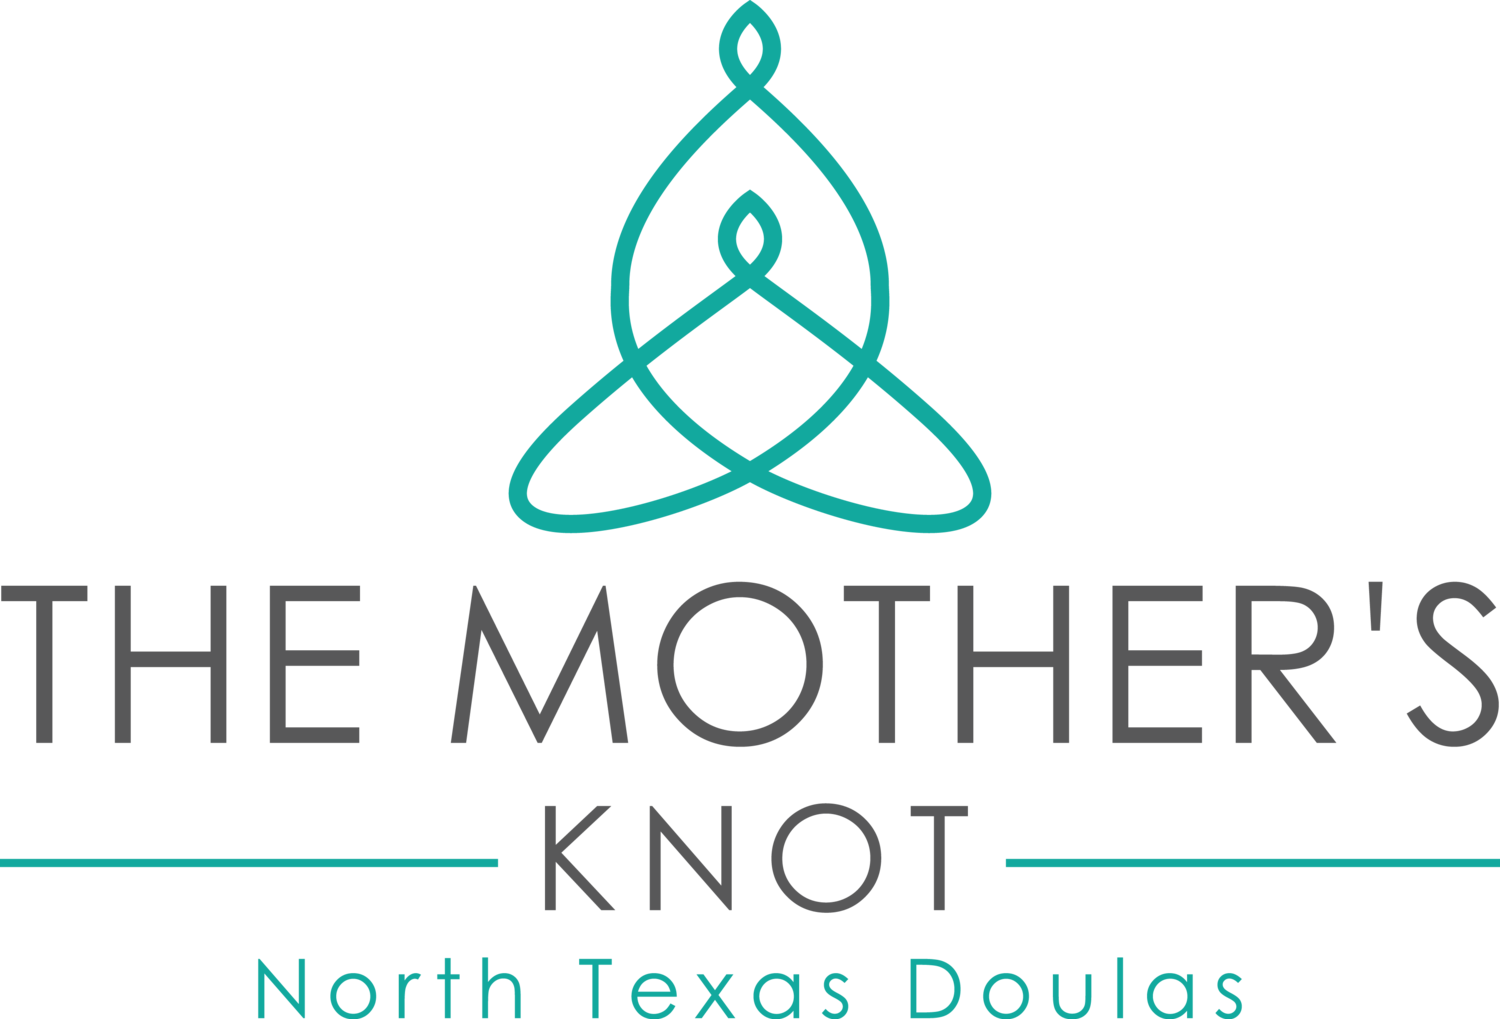 The Mother's Knot